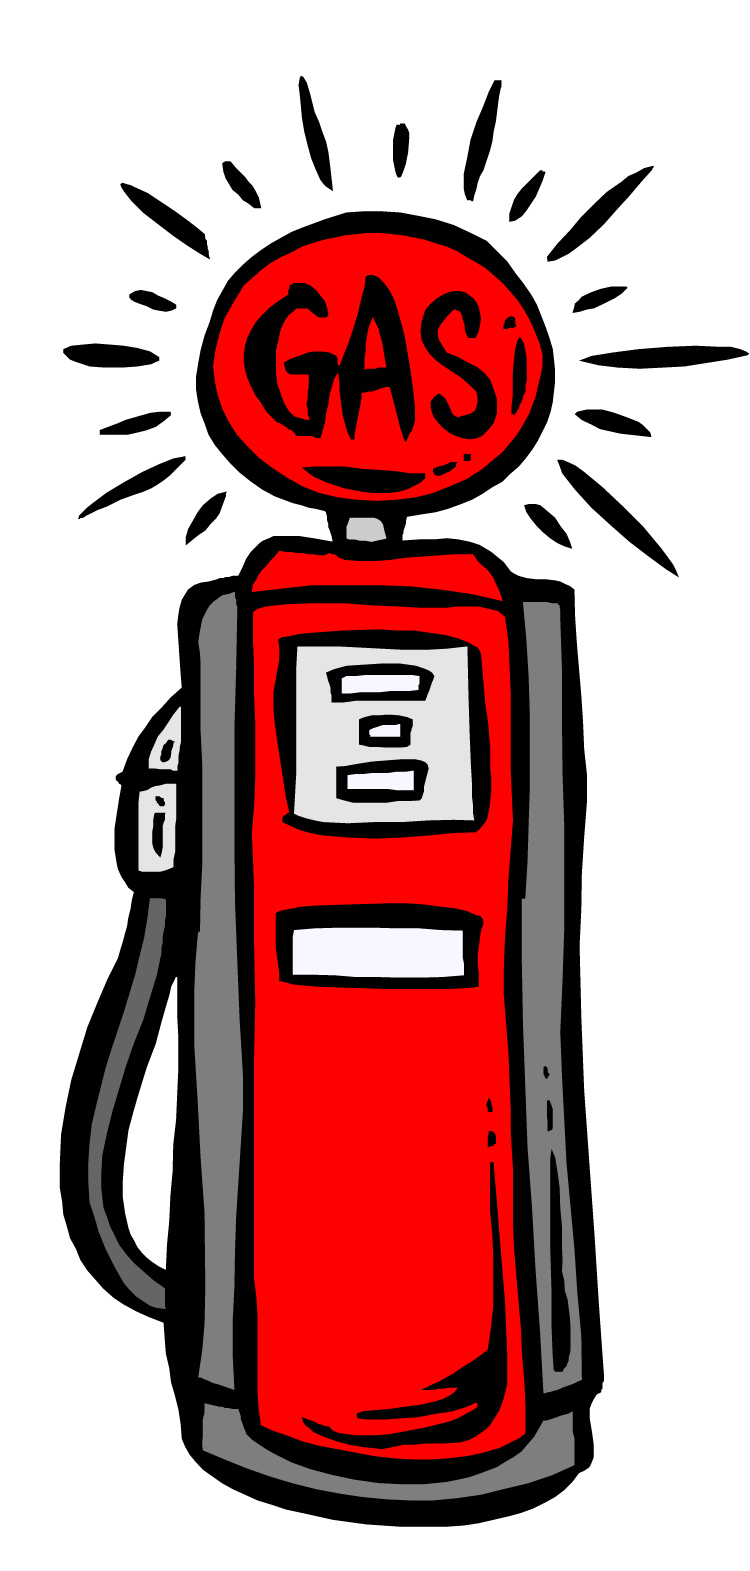 Gas clipart image picture Images For Gas Clipart - Clip Art Library picture